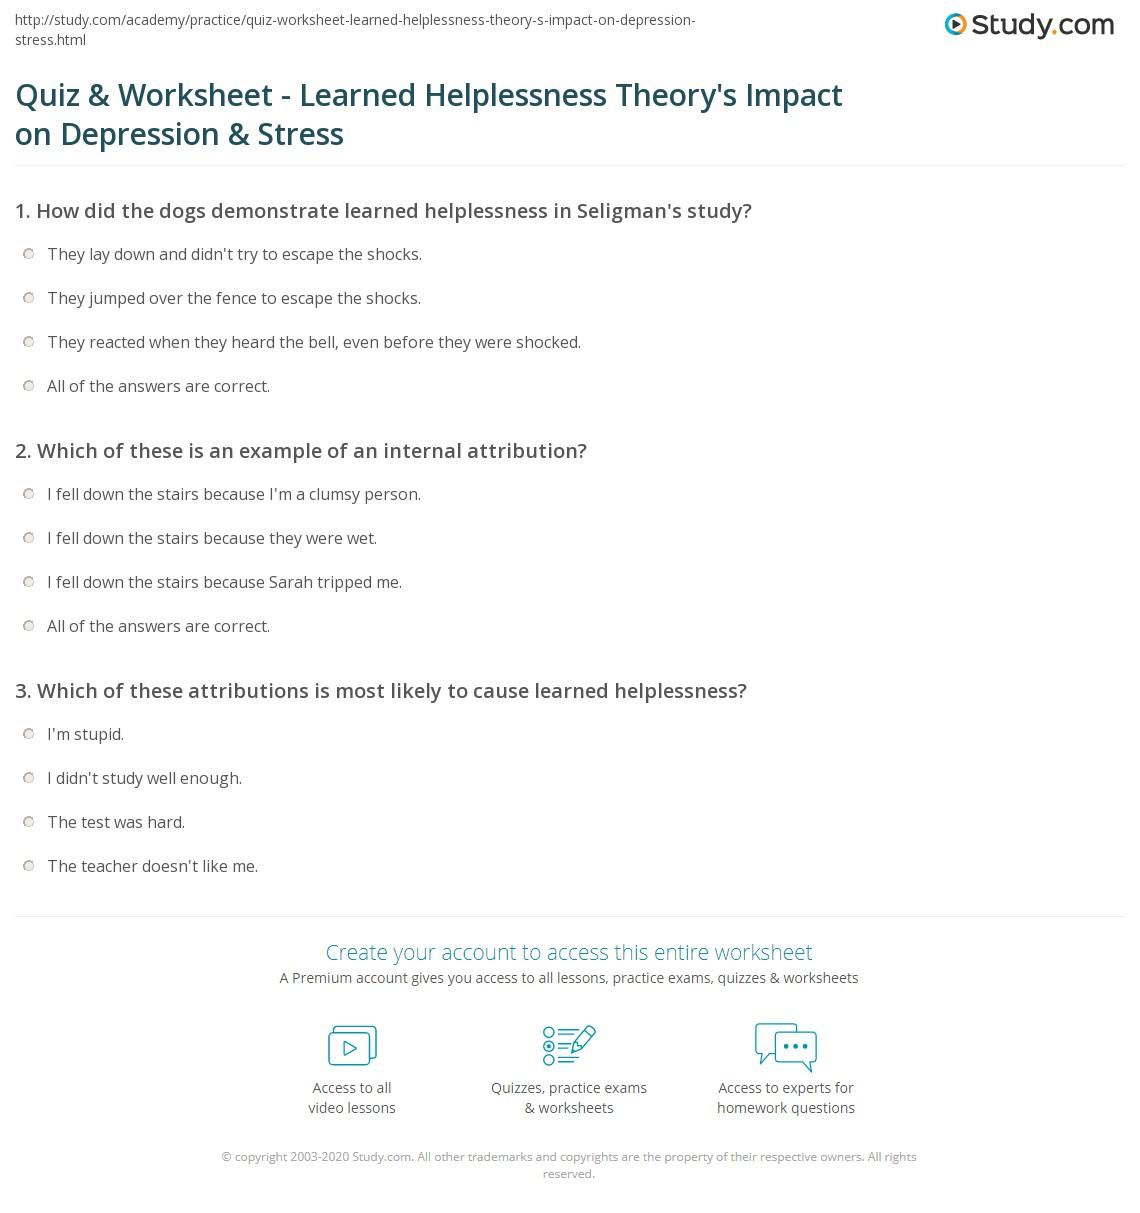 Quiz Worksheet Learned Helplessness Theorys Impact On